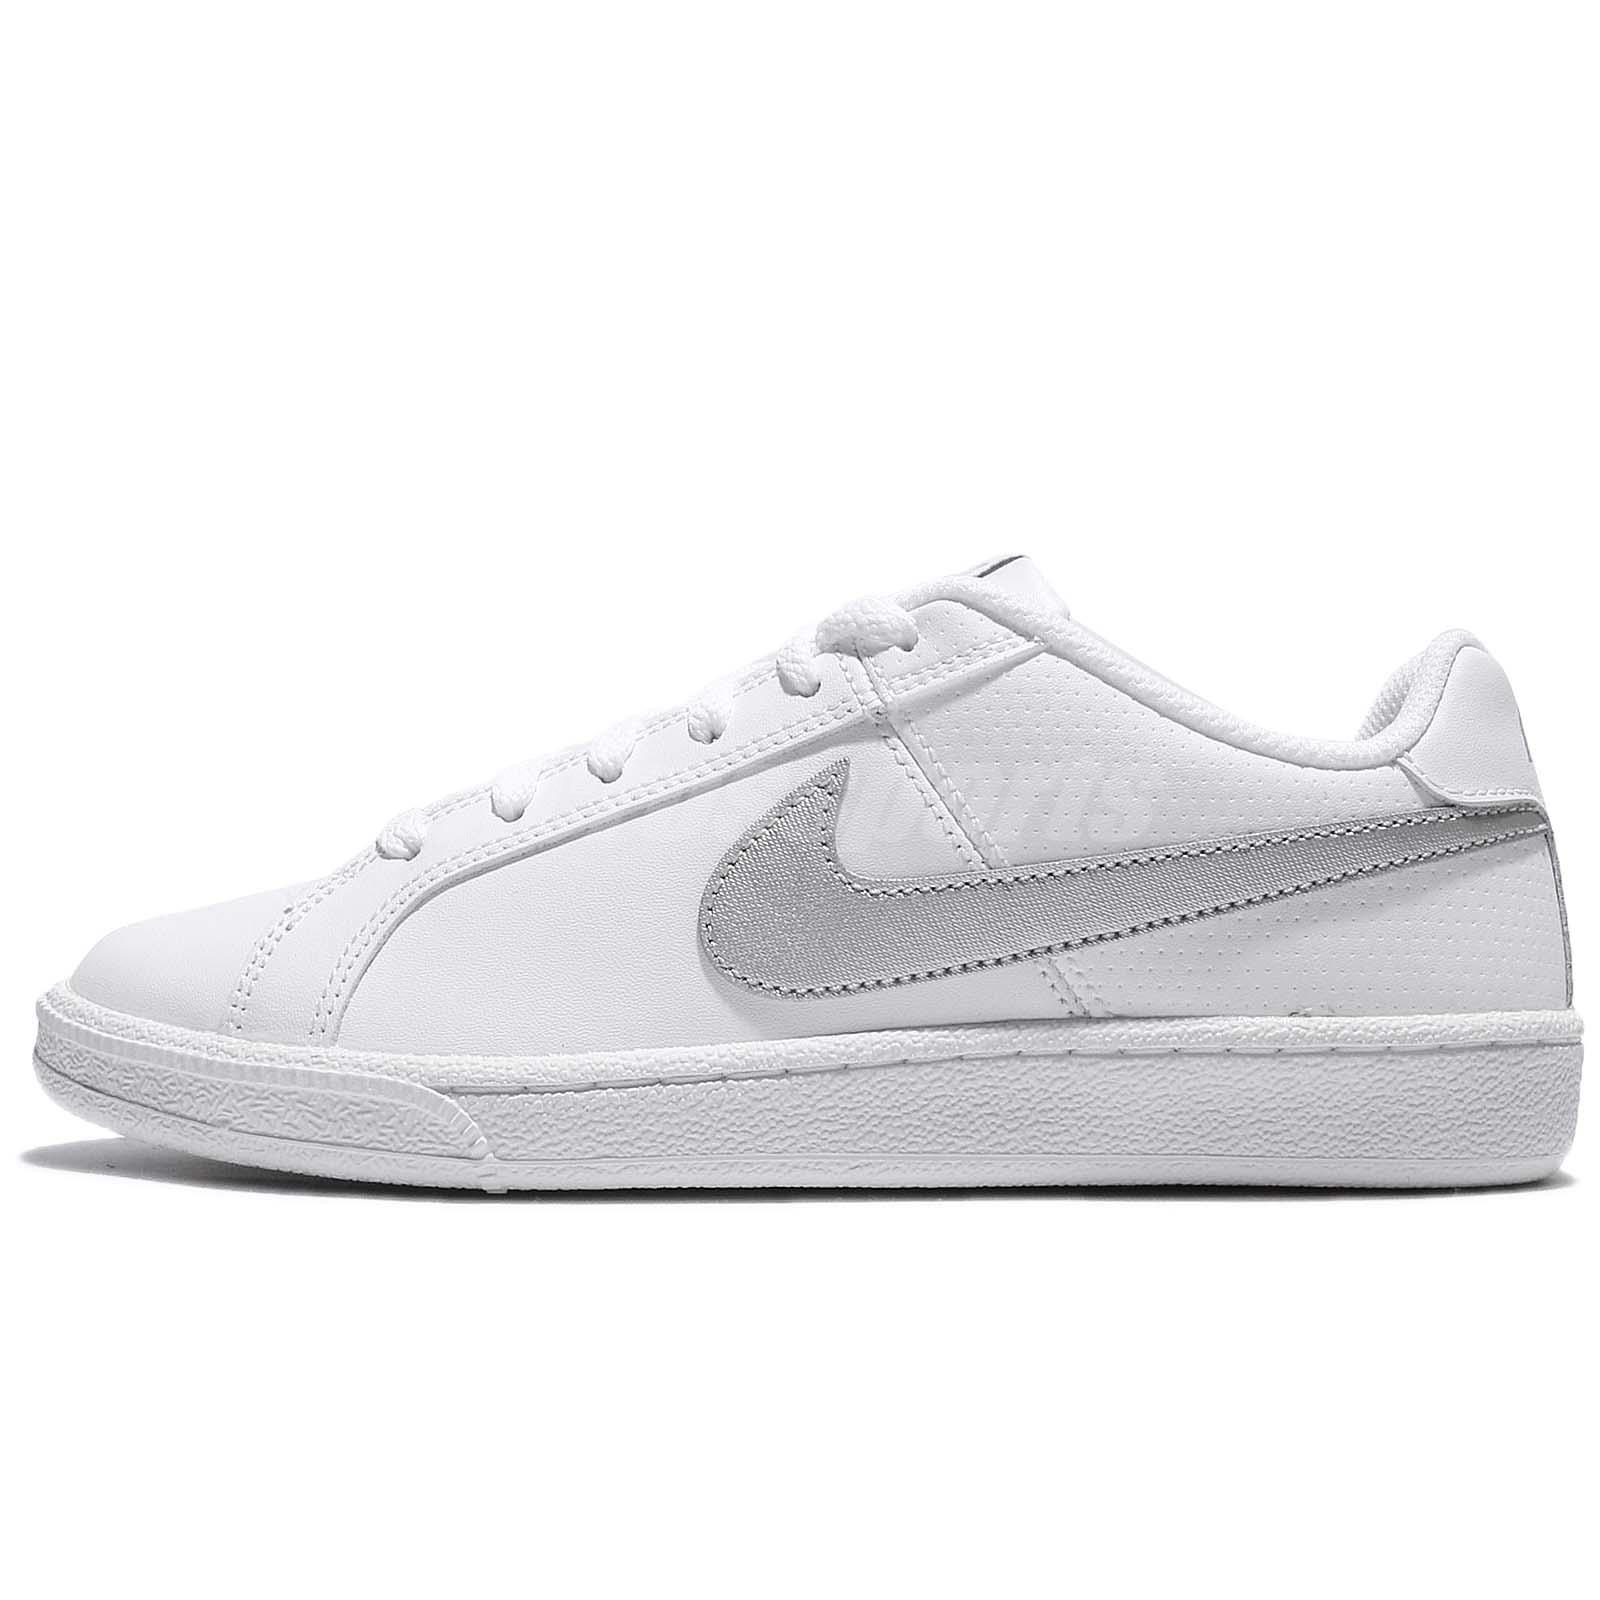 Nike Women S Court Royale Shoes White Silver